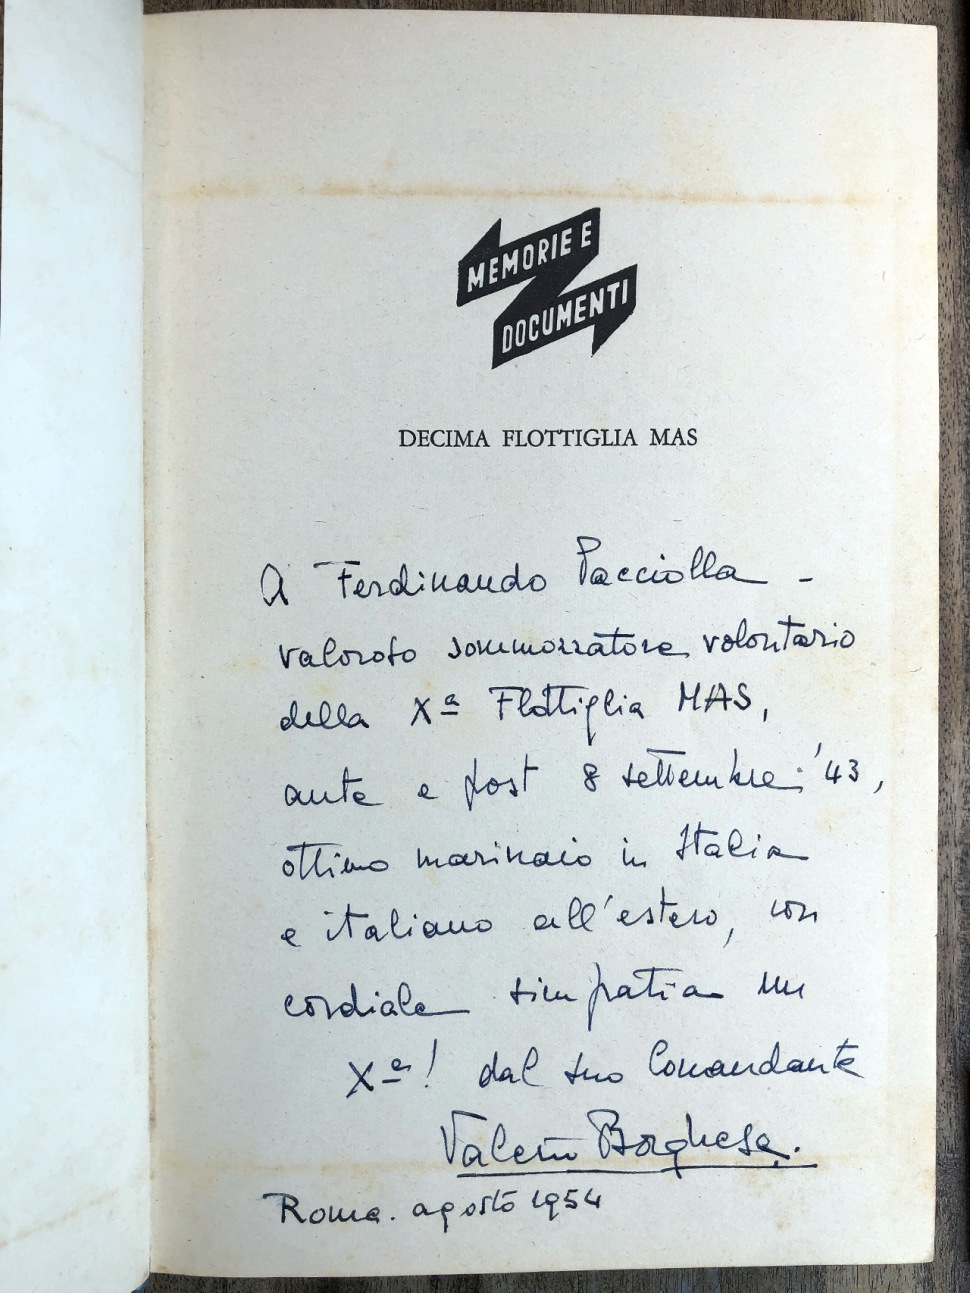 190518-doc-book-dedication-borghese-1954